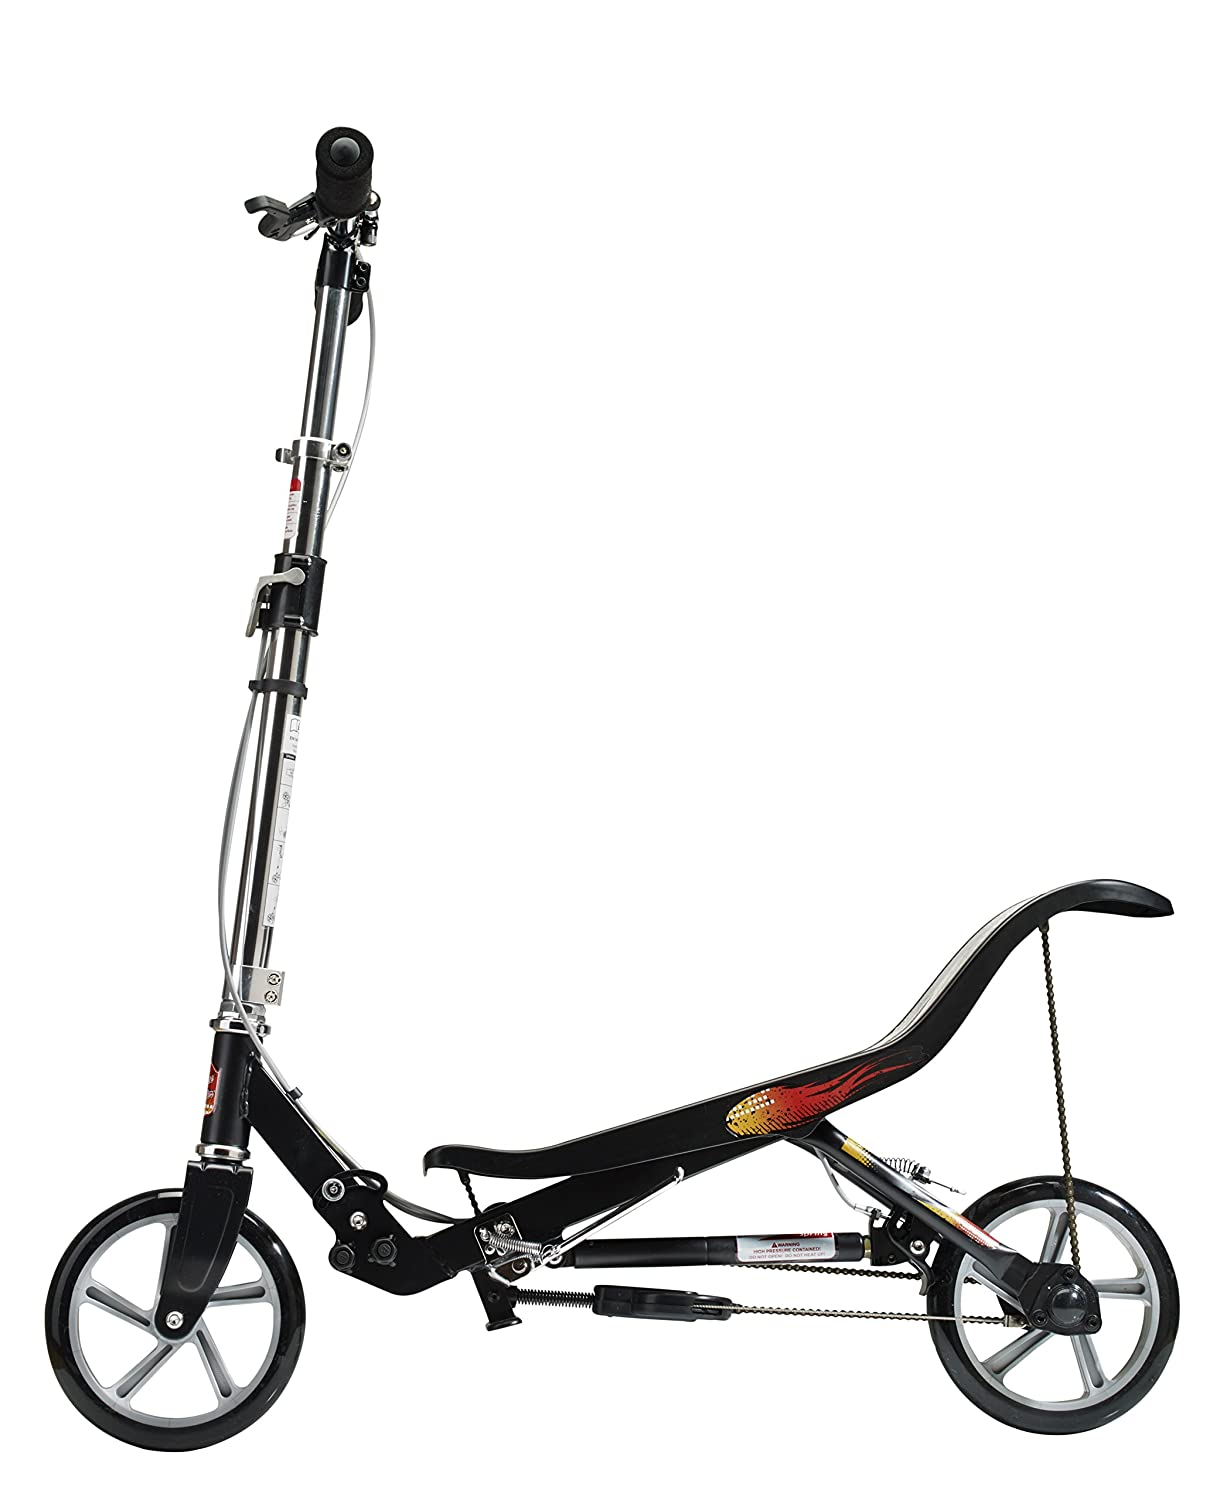 SpaceScooter Push Board Teeter Totter Kids Scooter with Brake, Air Suspension & Compact Fold - Black